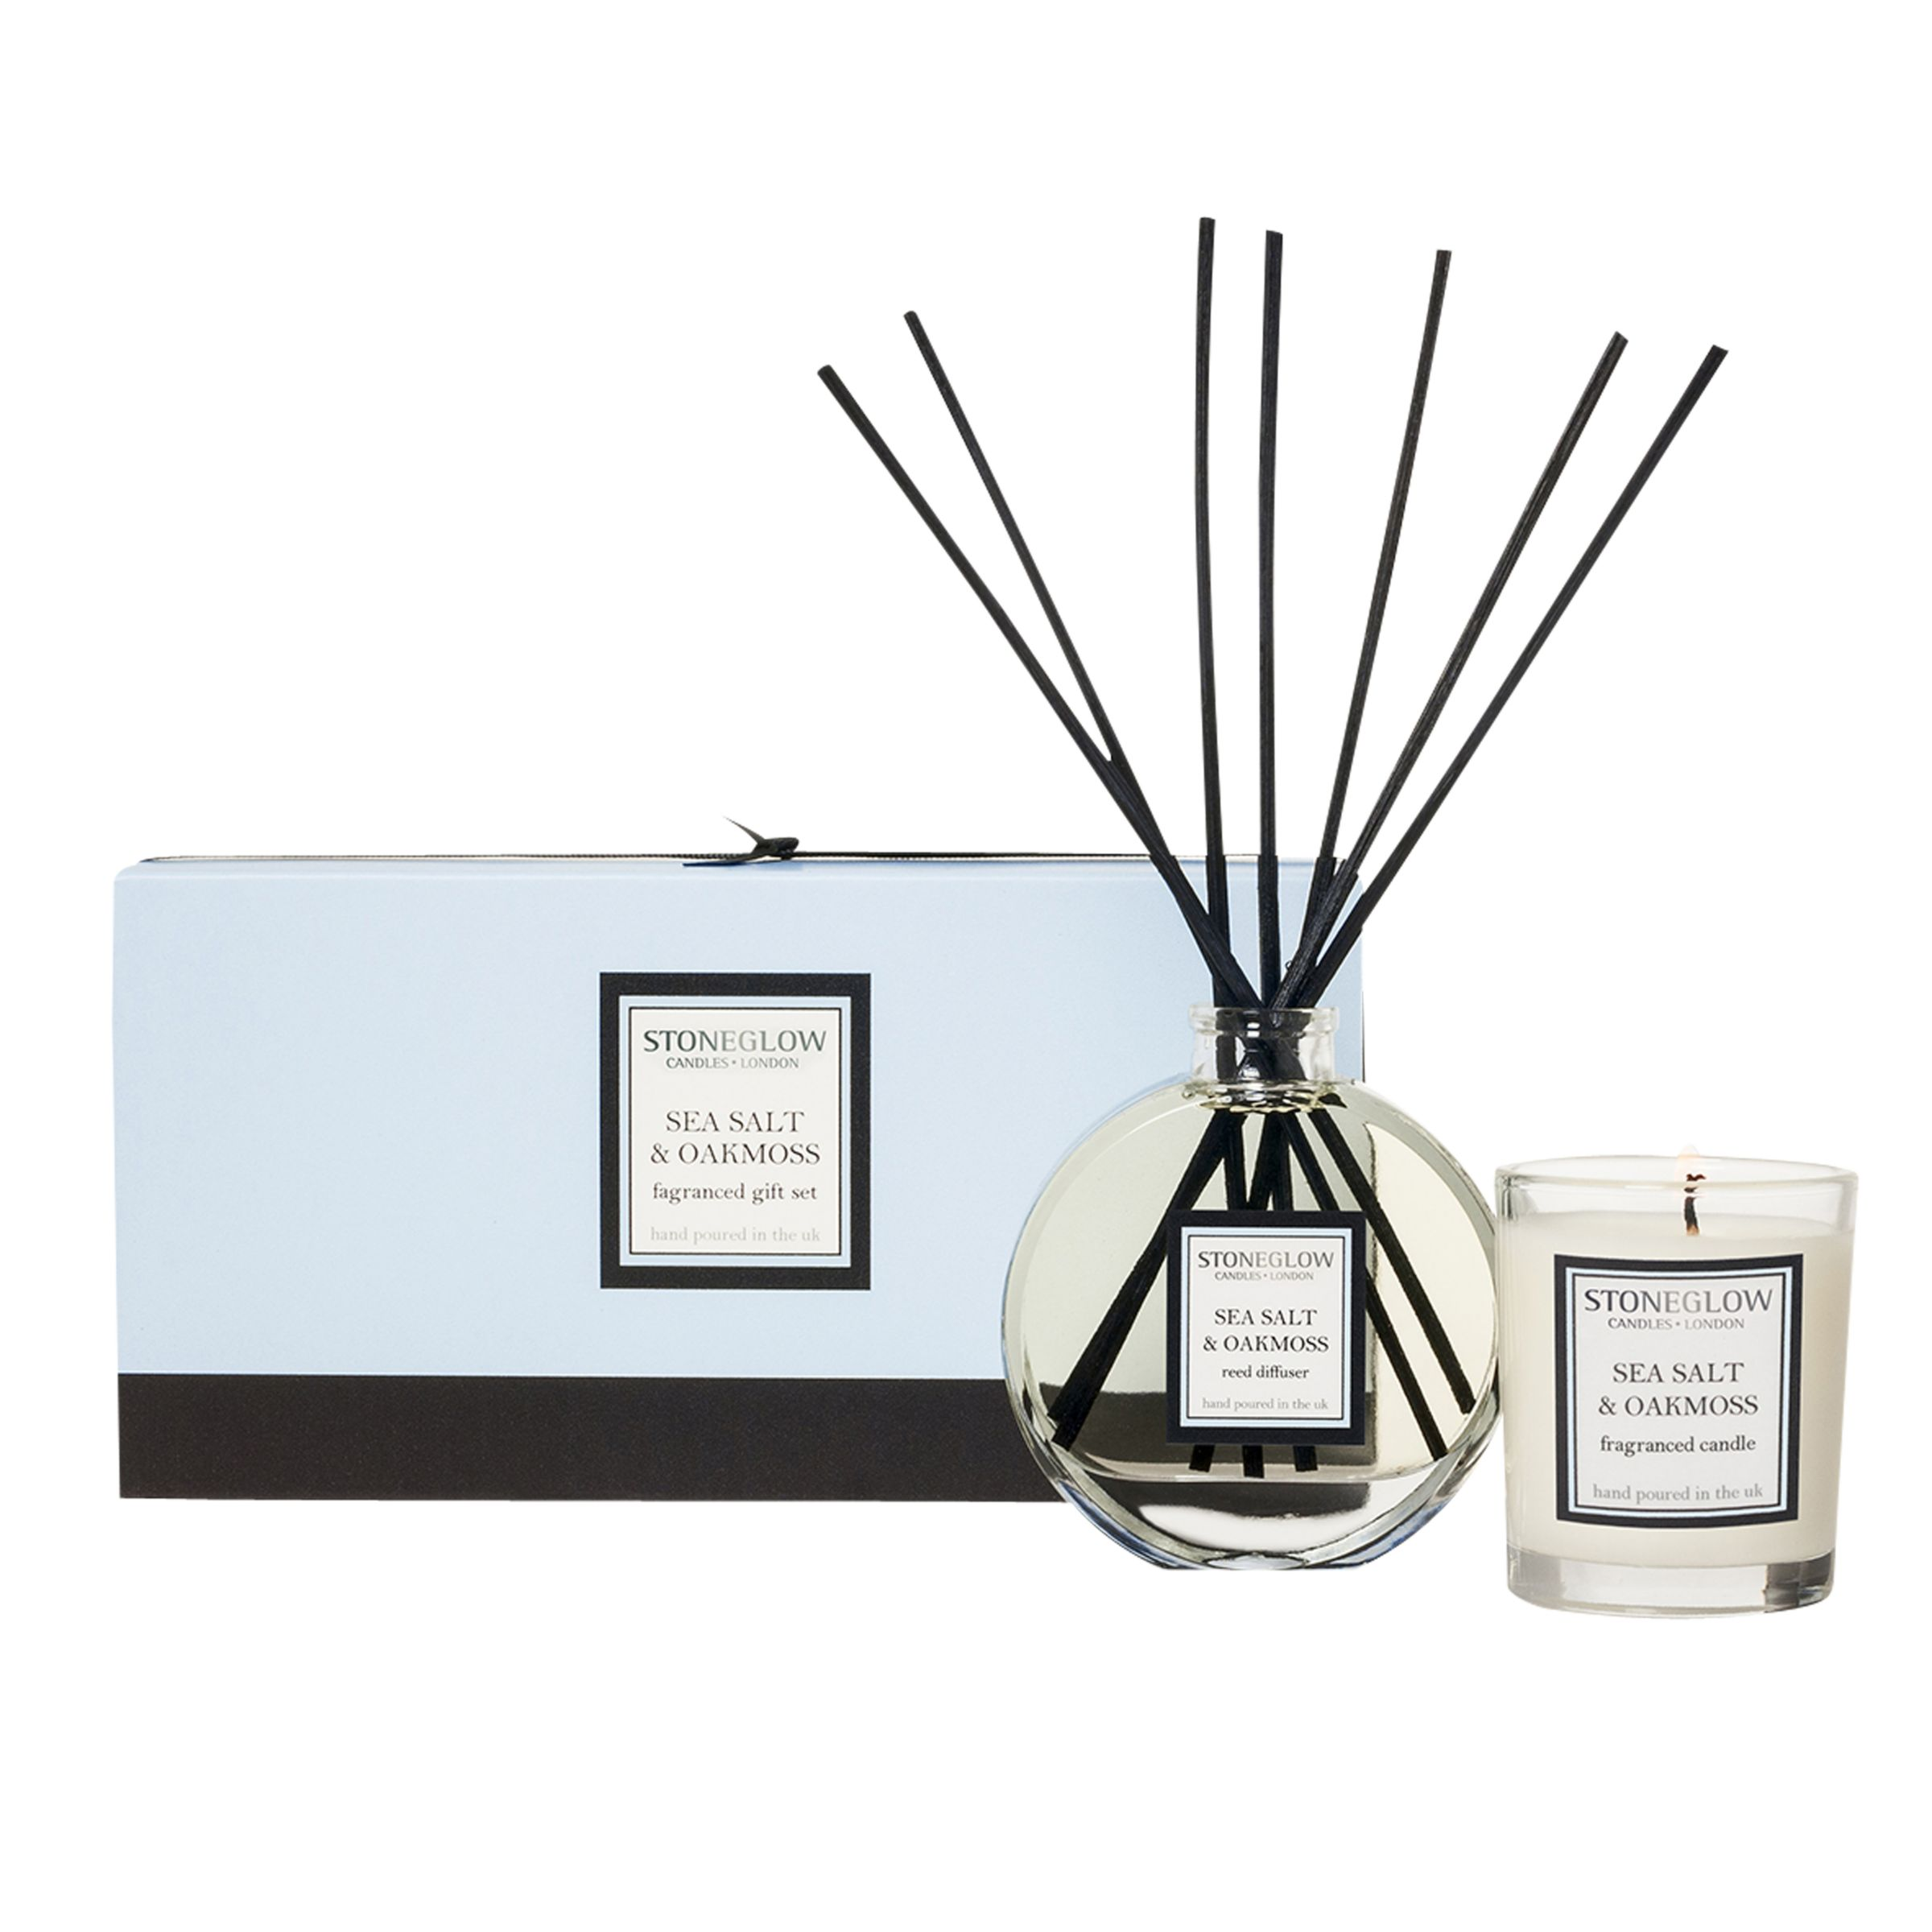 Stoneglow Stoneglow Scented Candle and Diffuser Gift Set, Seasalt and Oakmoss